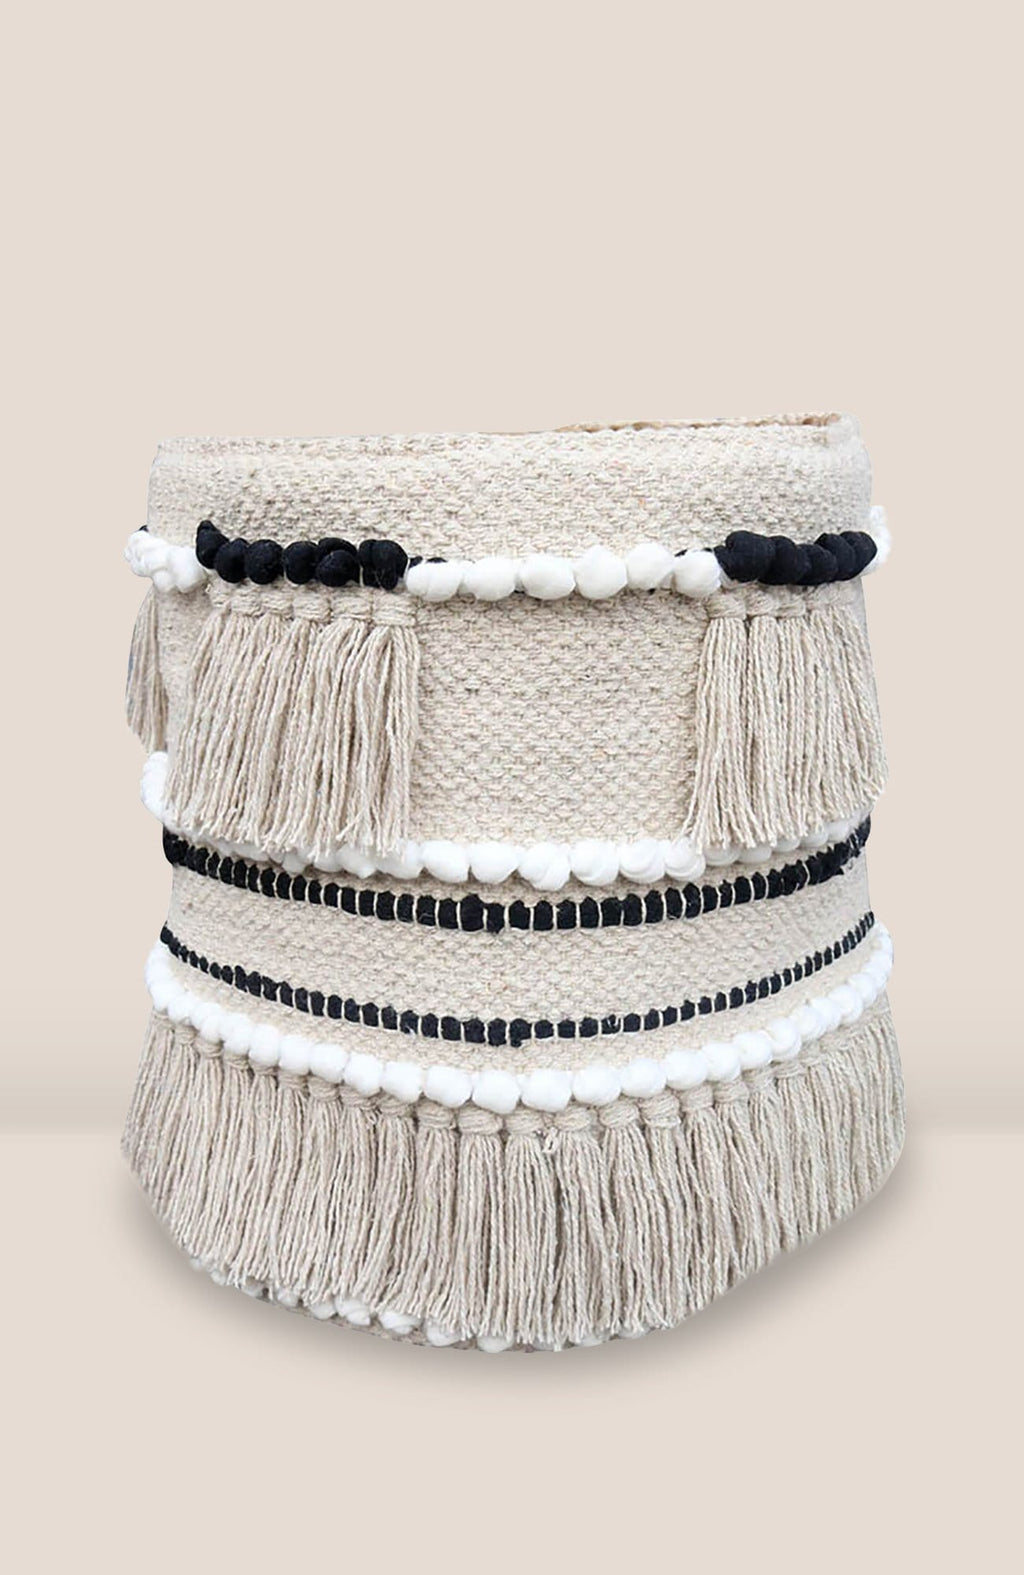 Woven Basket Ros - Home Decor | Shop Baskets, Ceramics, Pillows, Rugs & Wall Hangs online